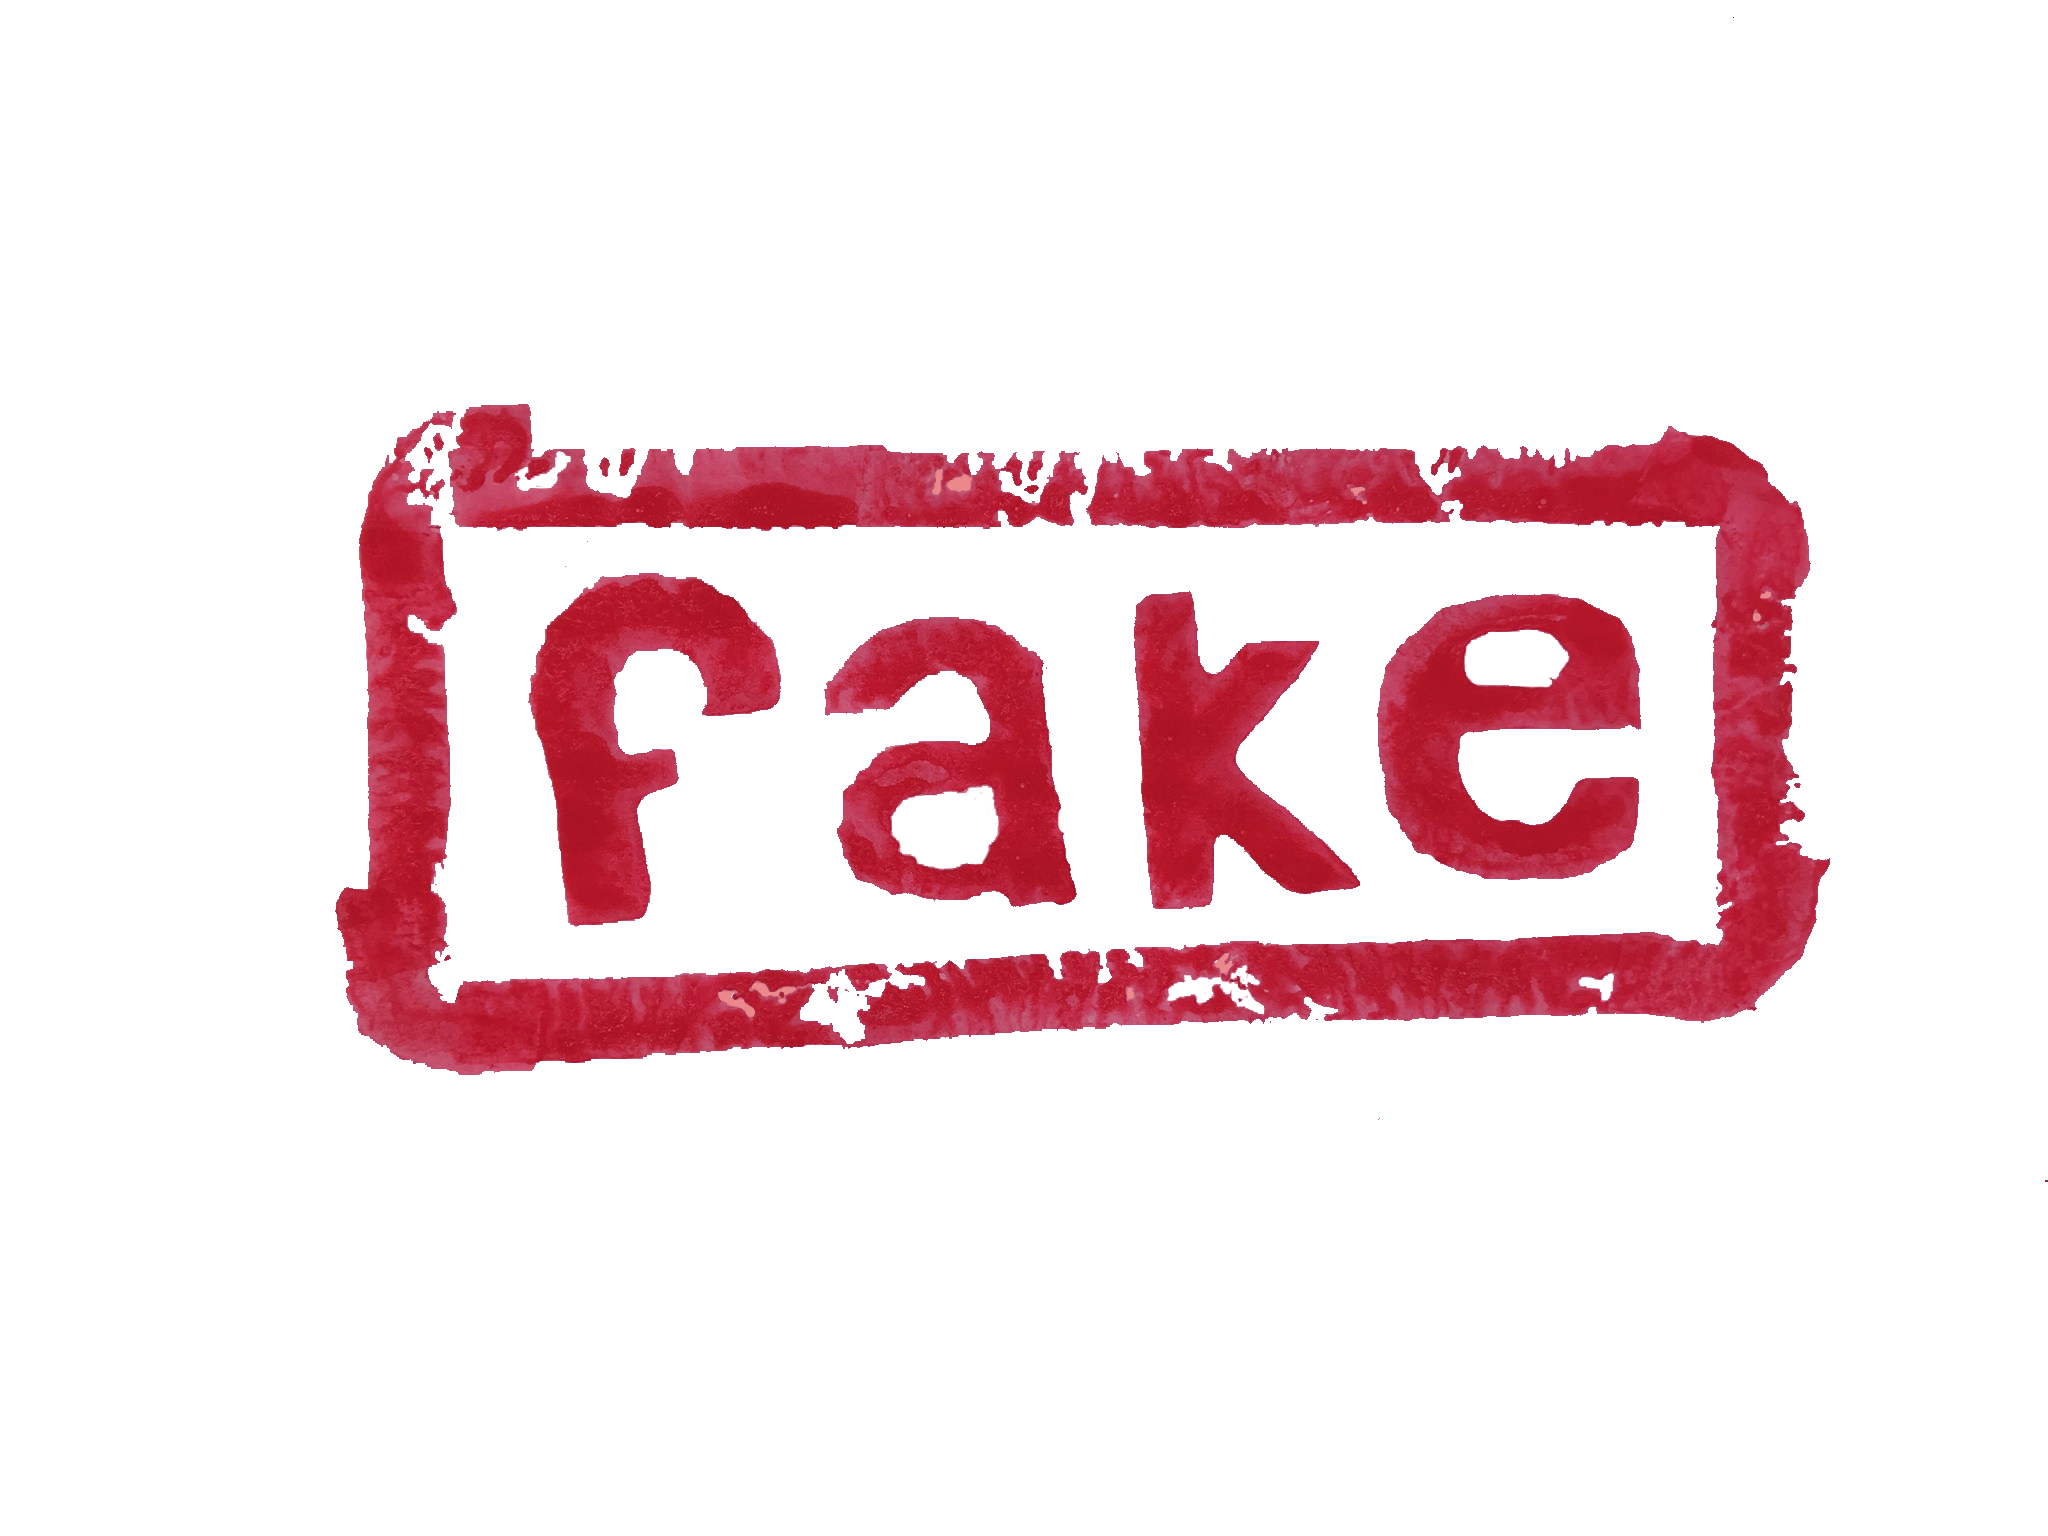 """Excursions Issue 9.1: """"Fake"""""""